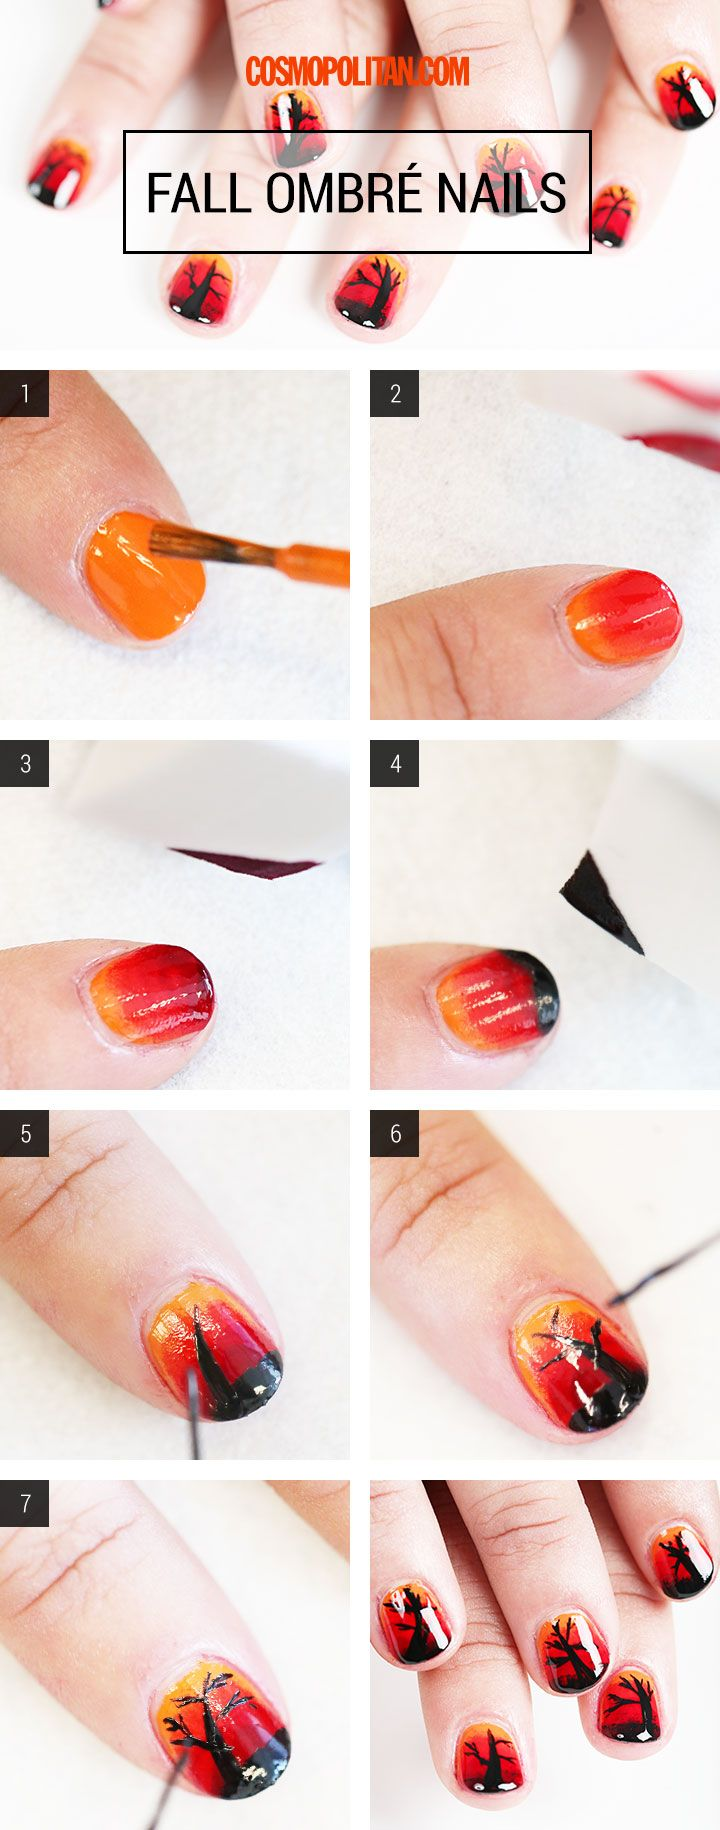 7 best fall autumn nails nail art images on pinterest nail nail art how to fall ombr nails solutioingenieria Choice Image